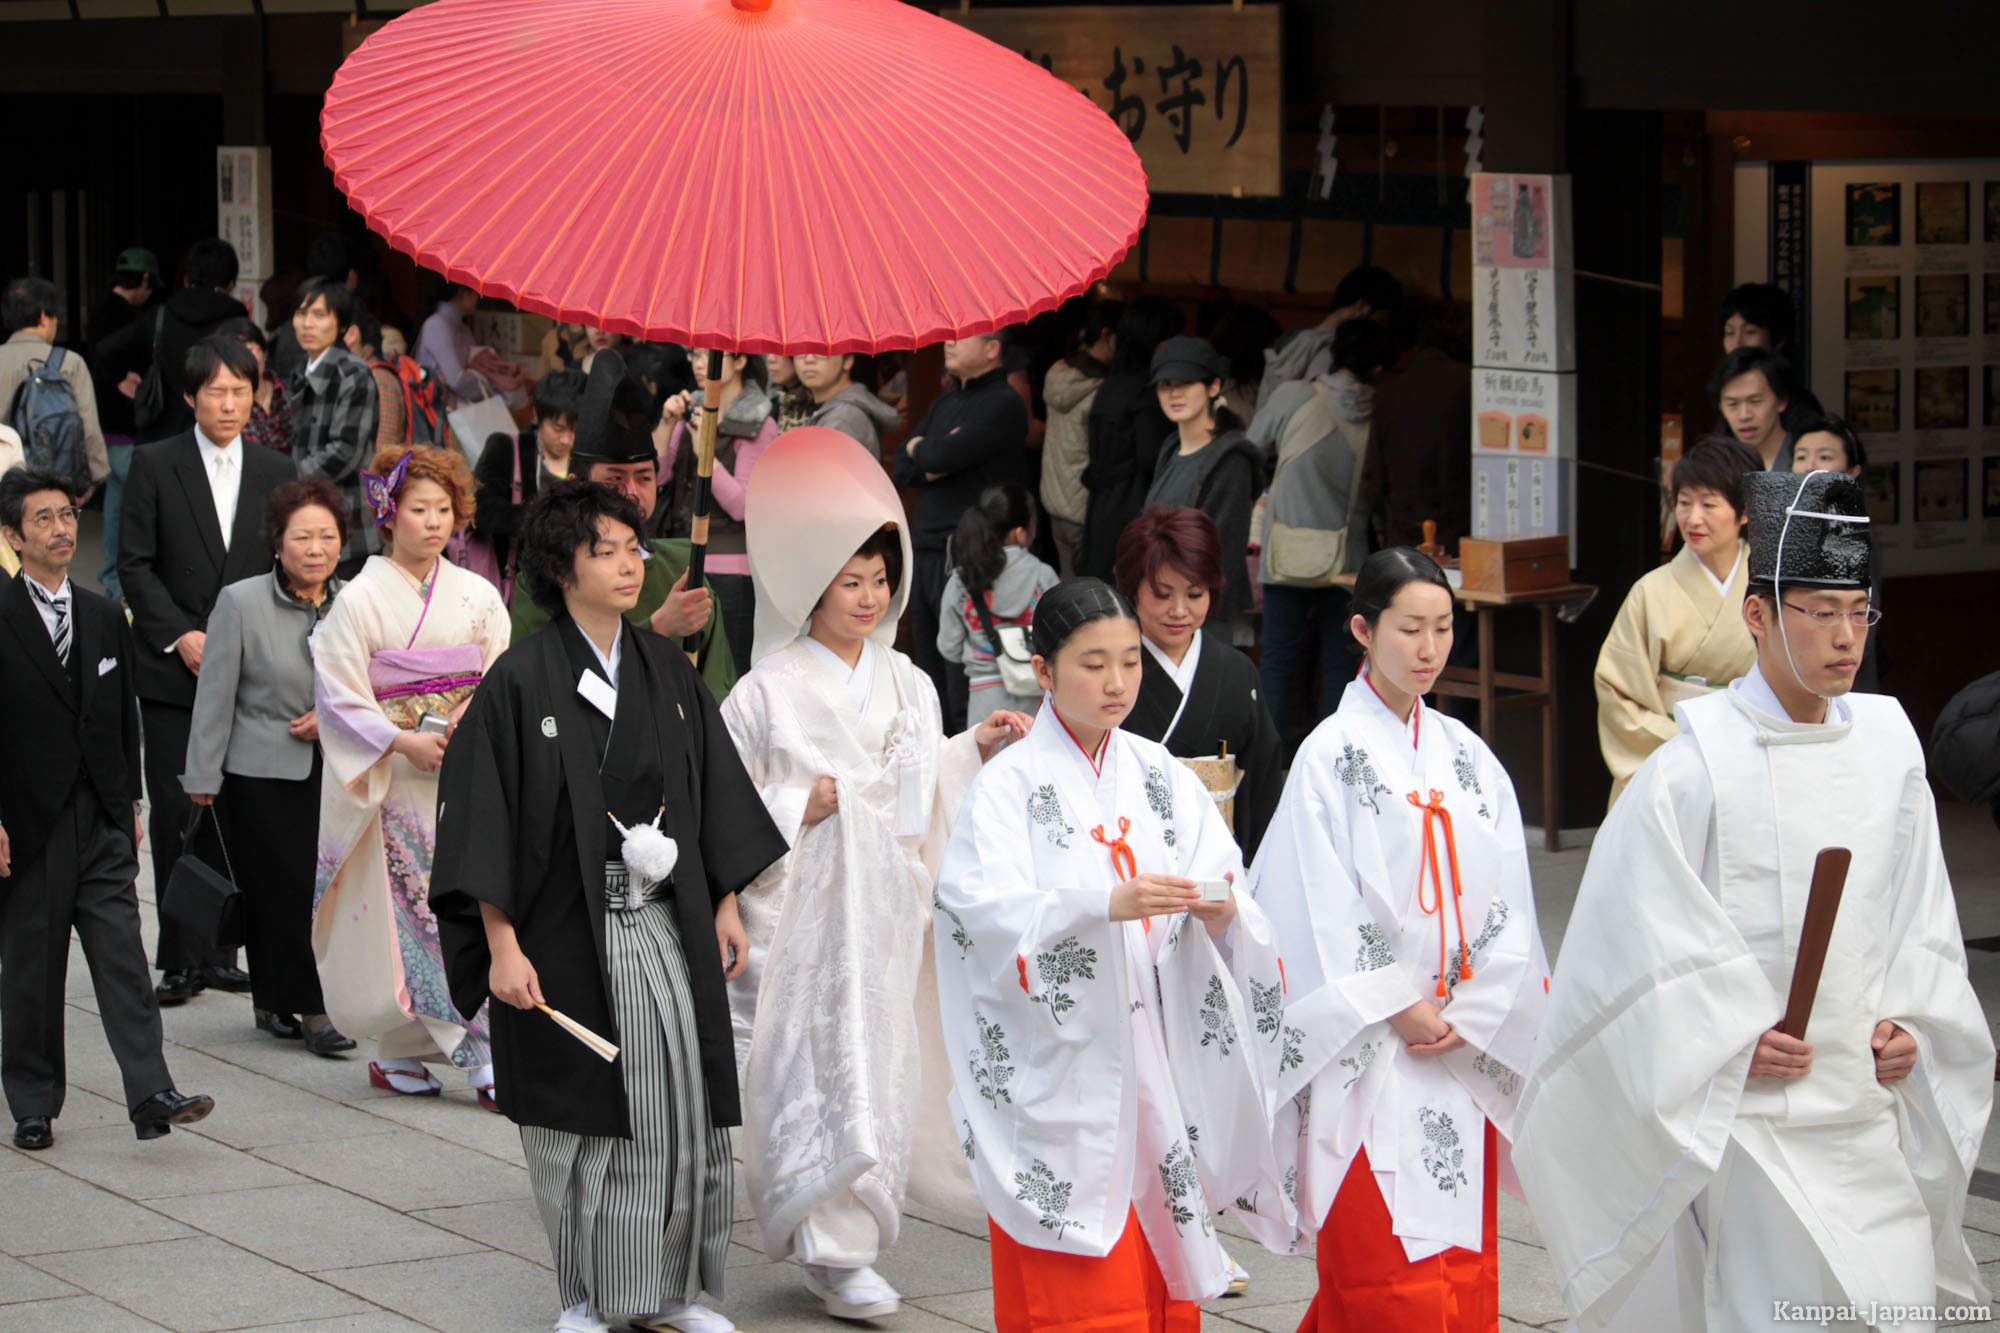 Japanese Wedding Traditions.A Look Inside The Traditional Shinto Wedding Of Japan